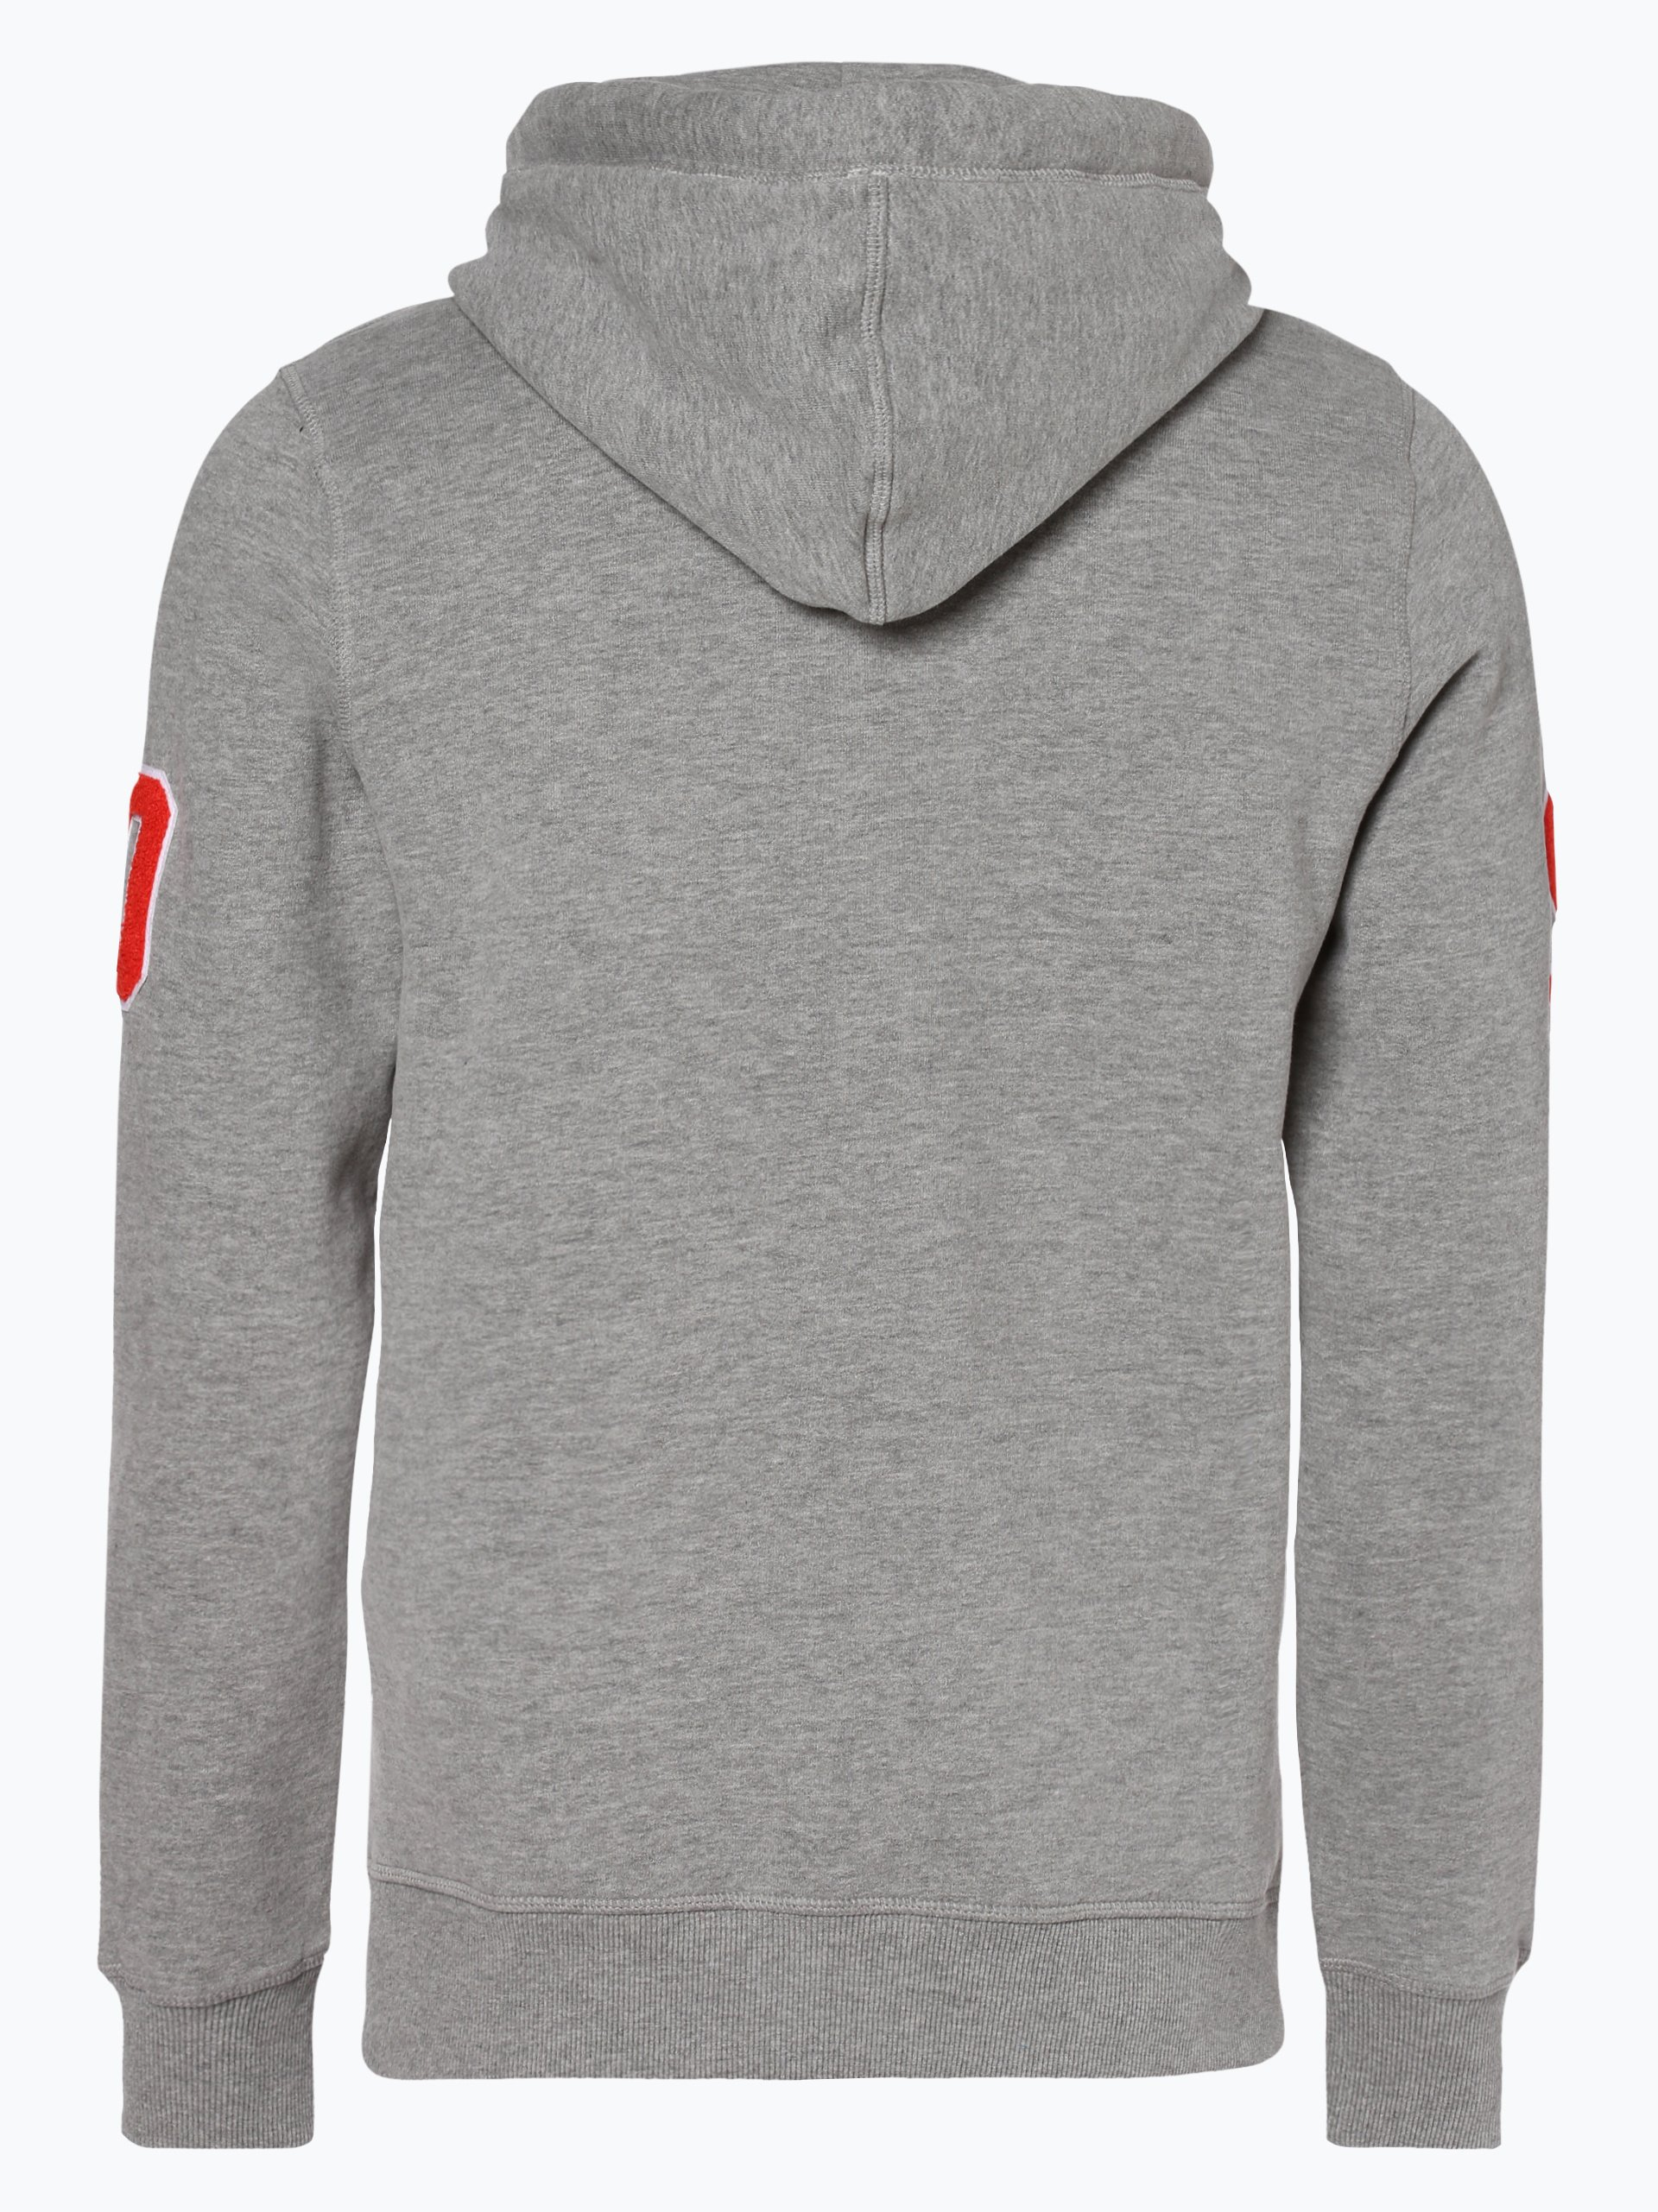 Jack & Jones Herren Sweatjacke